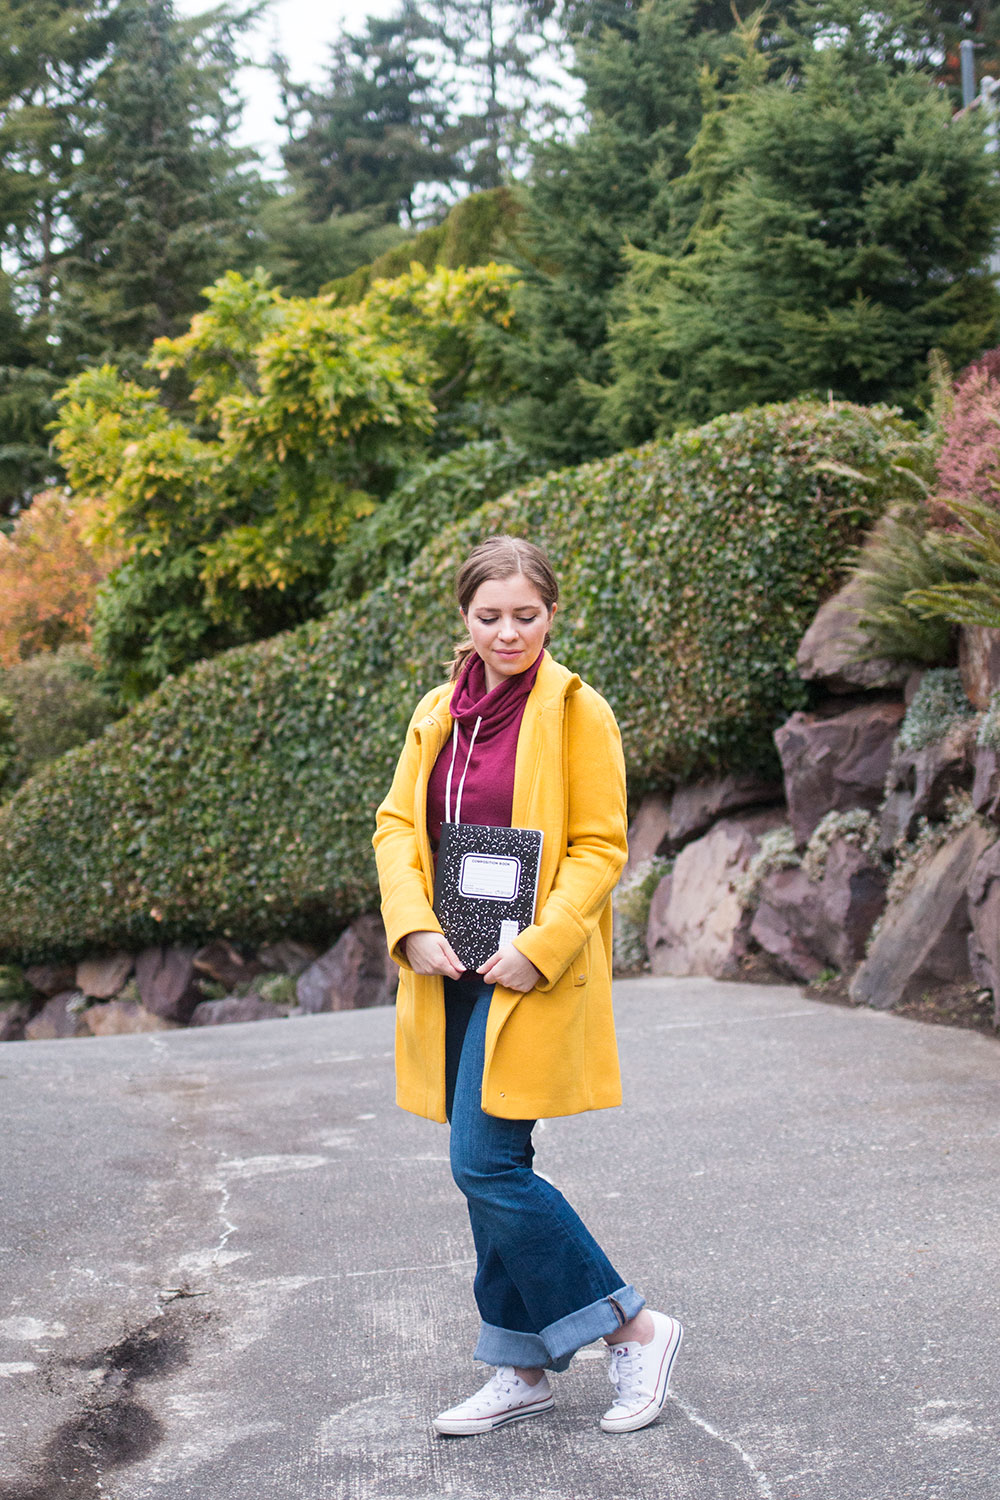 DIY Harriet the Spy Costume for Women // Work Appropriate Halloween Costumes // Hello Rigby Seattle Fashion Blog